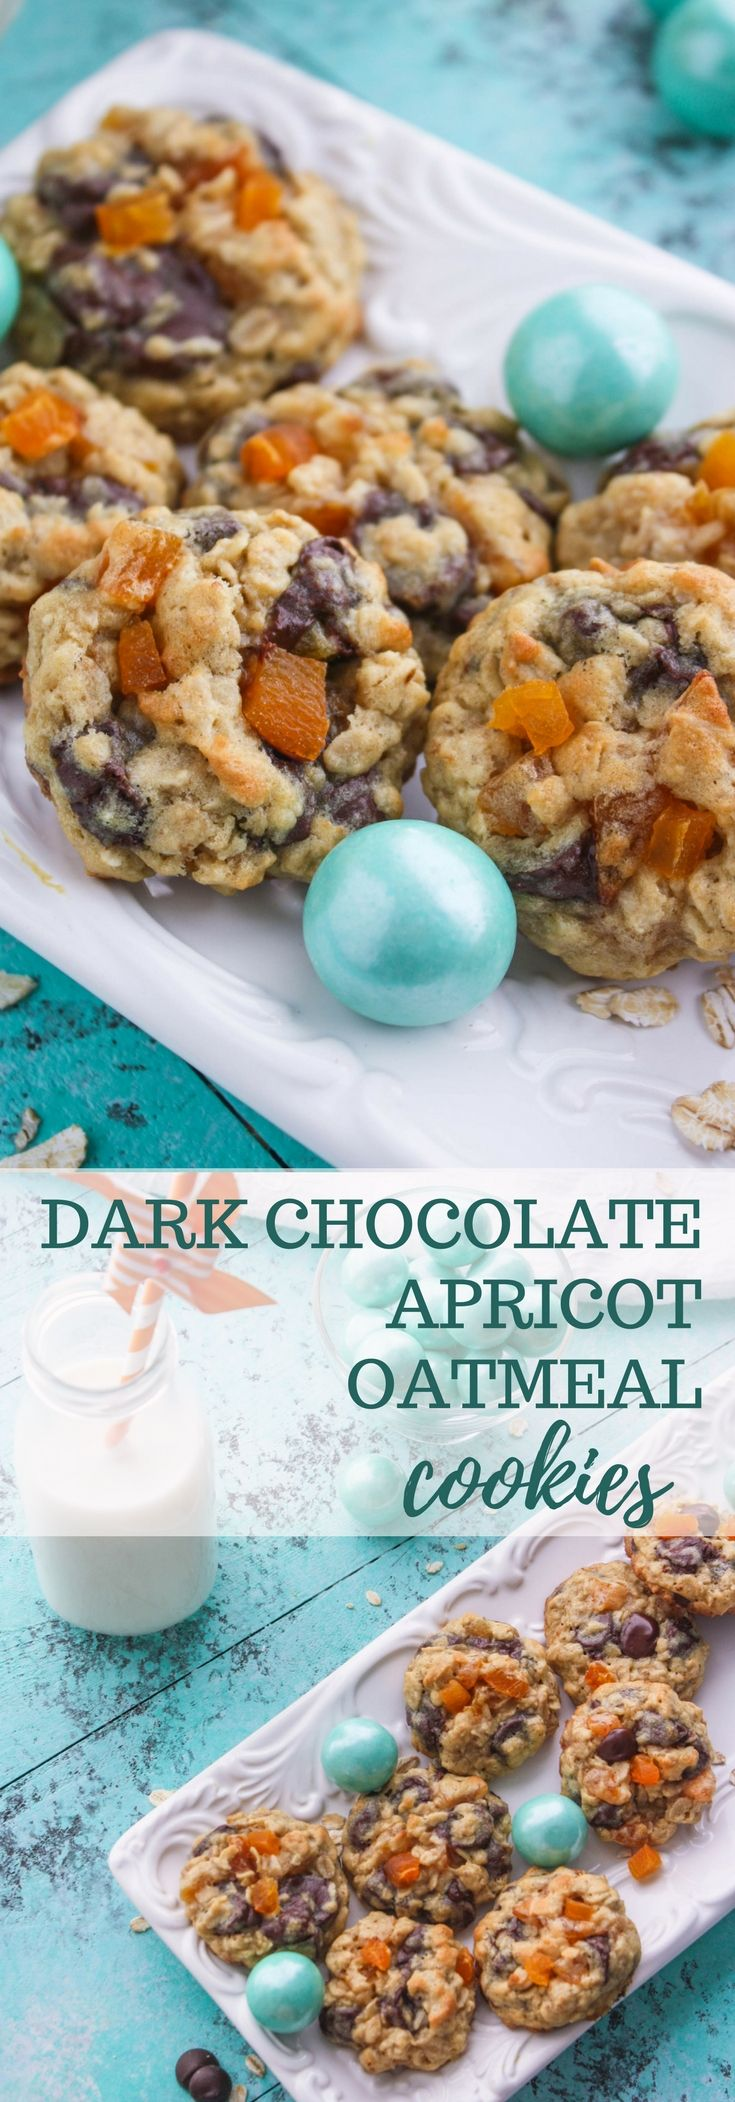 Dark Chocolate Apricot Oatmeal Cookies are chewy and loaded with goodies! Dark Chocolate Apricot Oatmeal Cookies are tasty cookies to sink your teeth into! Yum! #cookies #dessert #snack